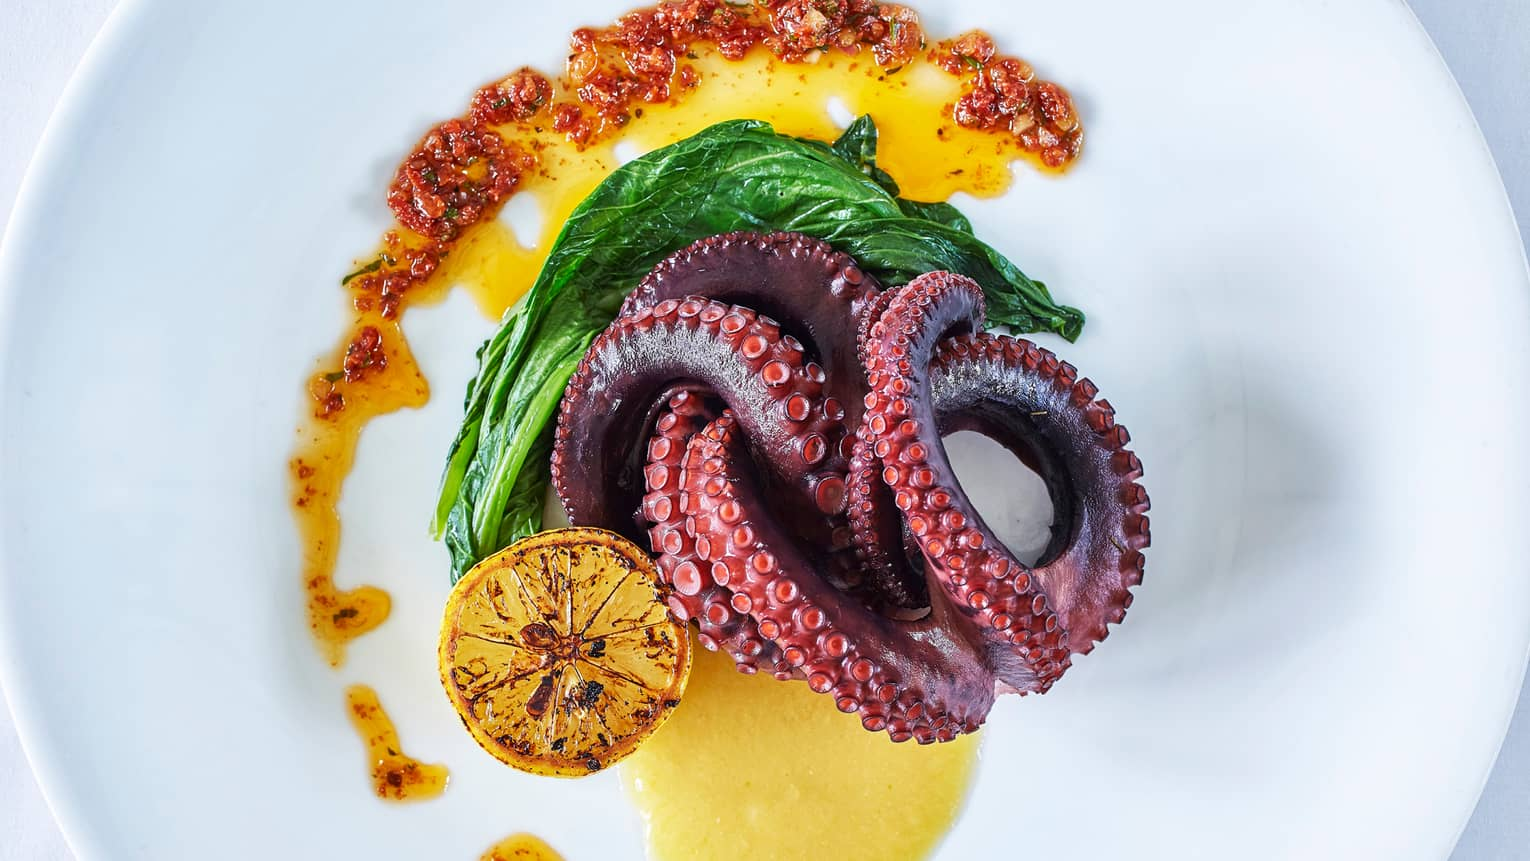 Roasted octopus legs intertwined on plate with roasted lemon, greens, sauce